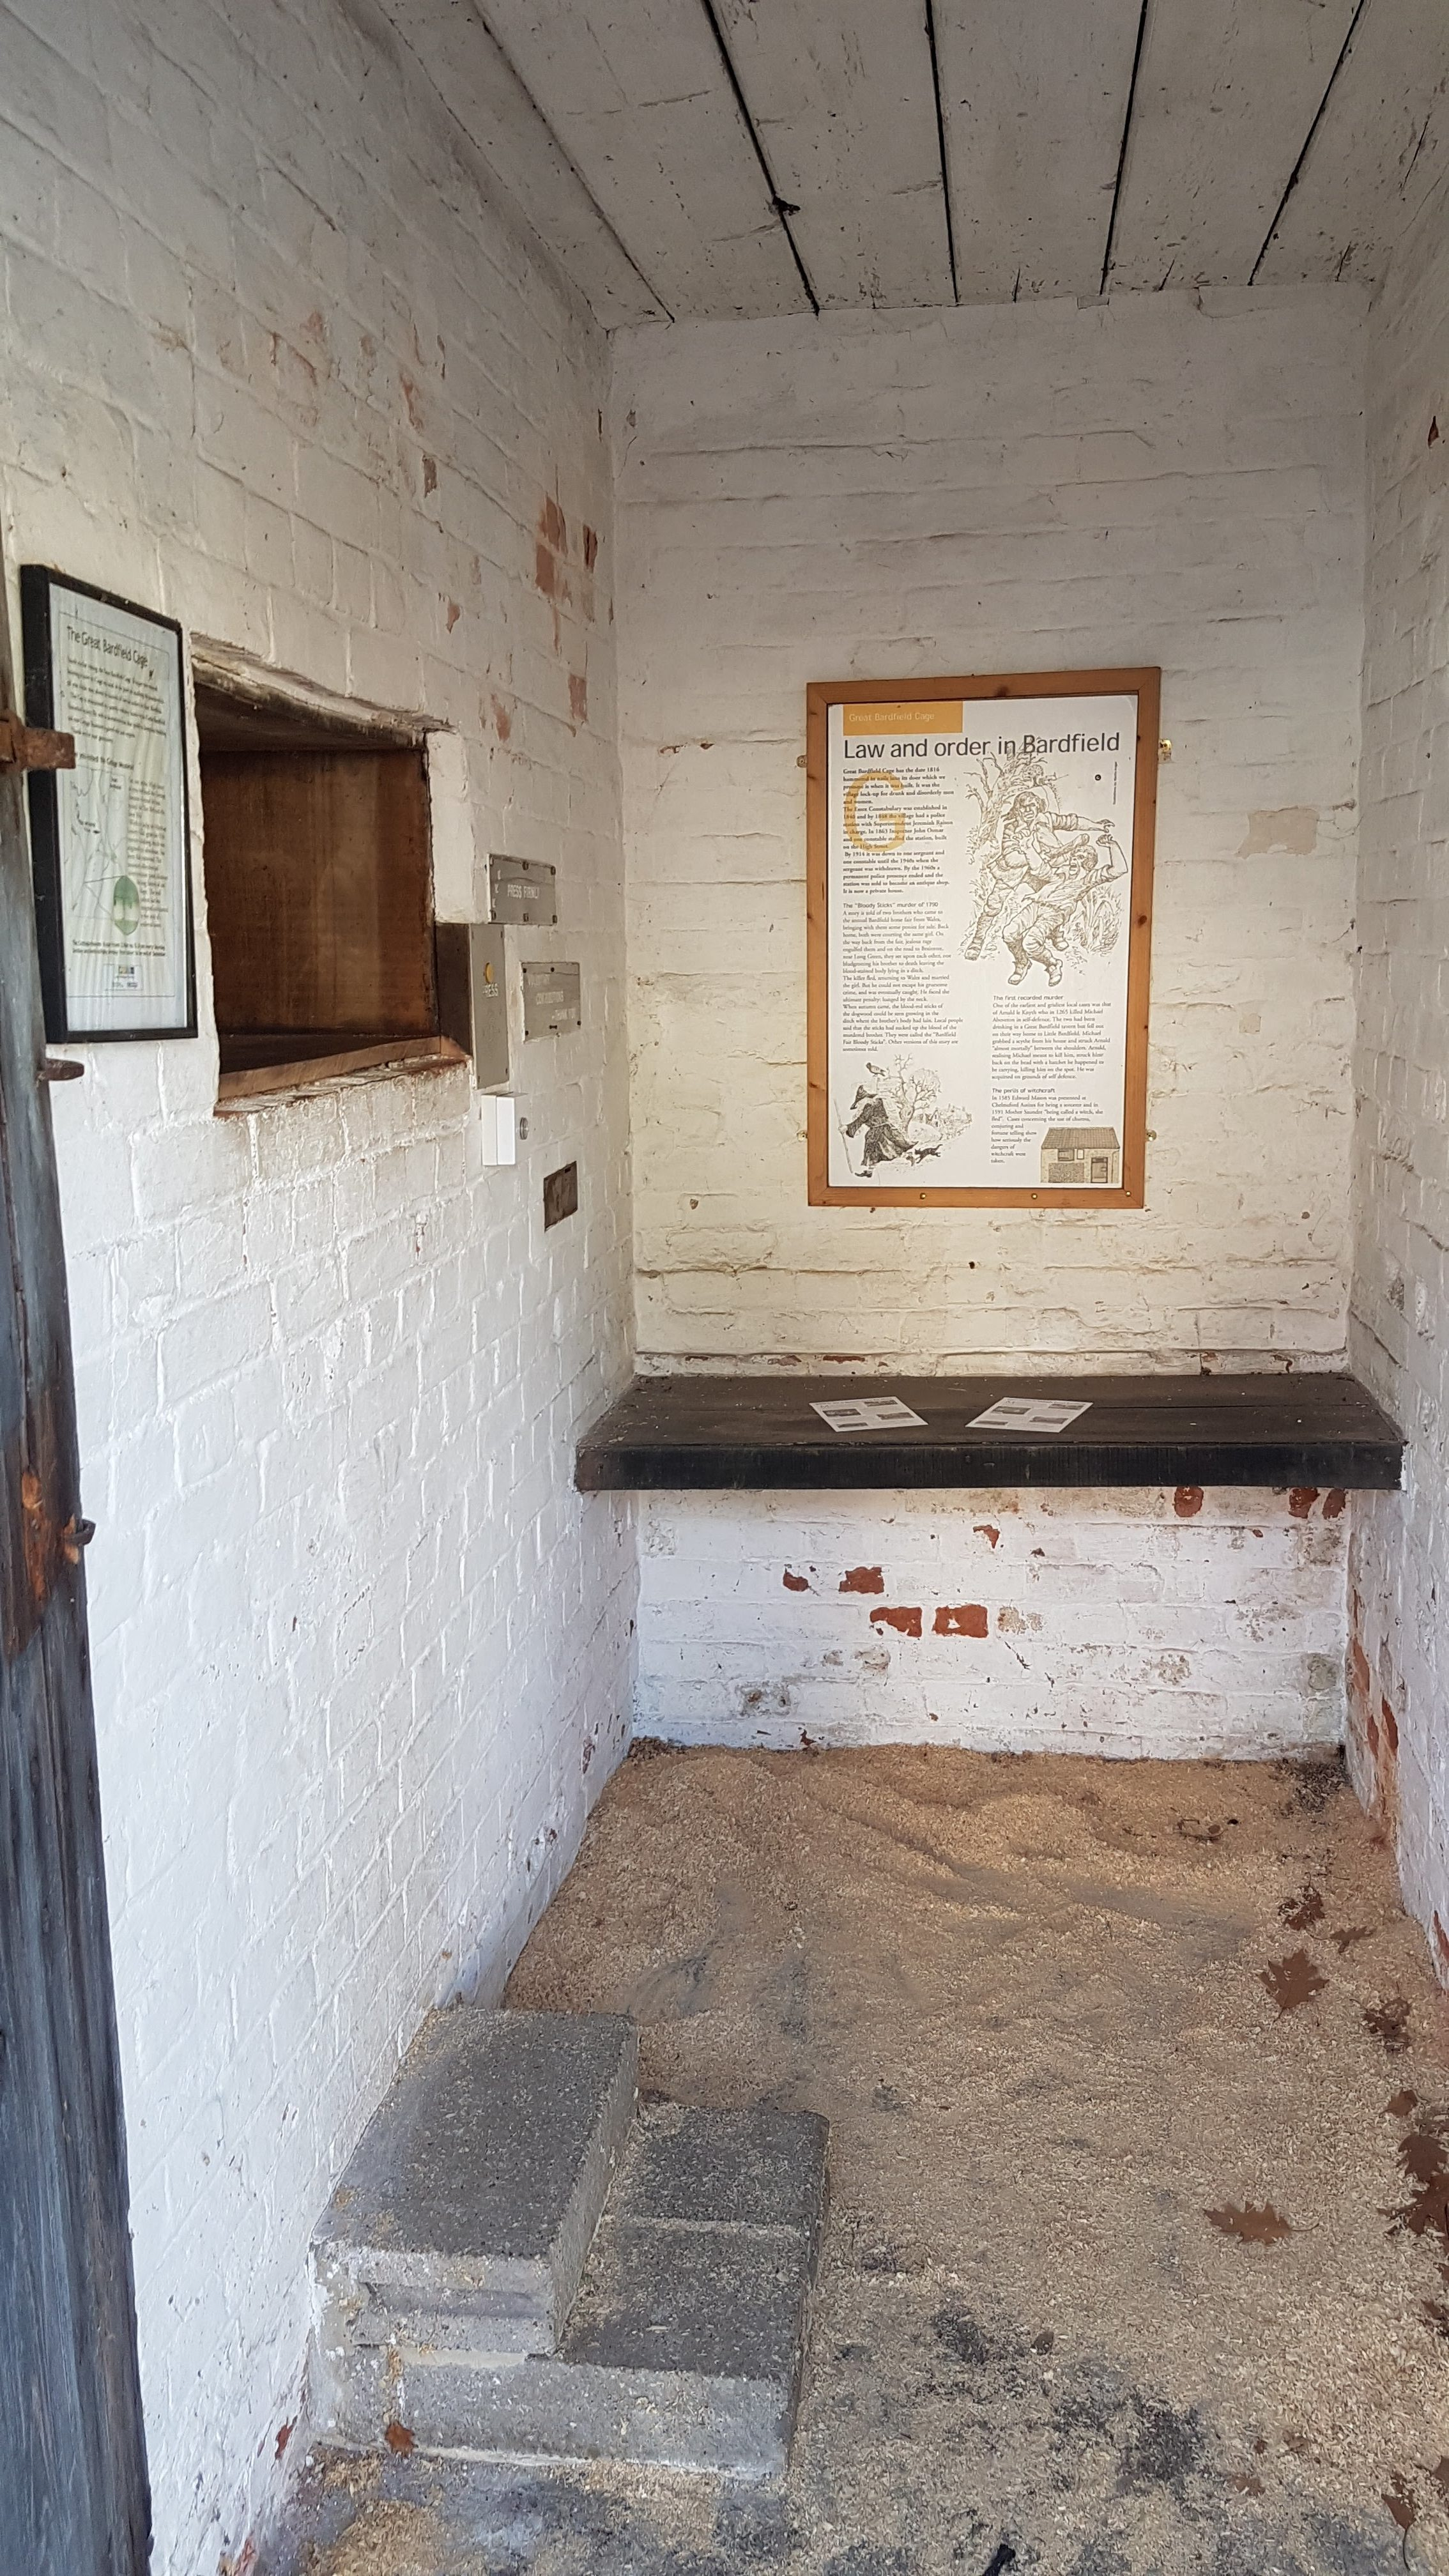 Interior of the first cell. Substantially smaller than the second cell. Wooden bench is probably original, but cut-out on the left-hand wall is almost surely recent to allow visitors to see into the second cell. Information panels, compiled by the Great Bardfield Historical Society, tell the story of the lock-up and crime in the local area in times past.